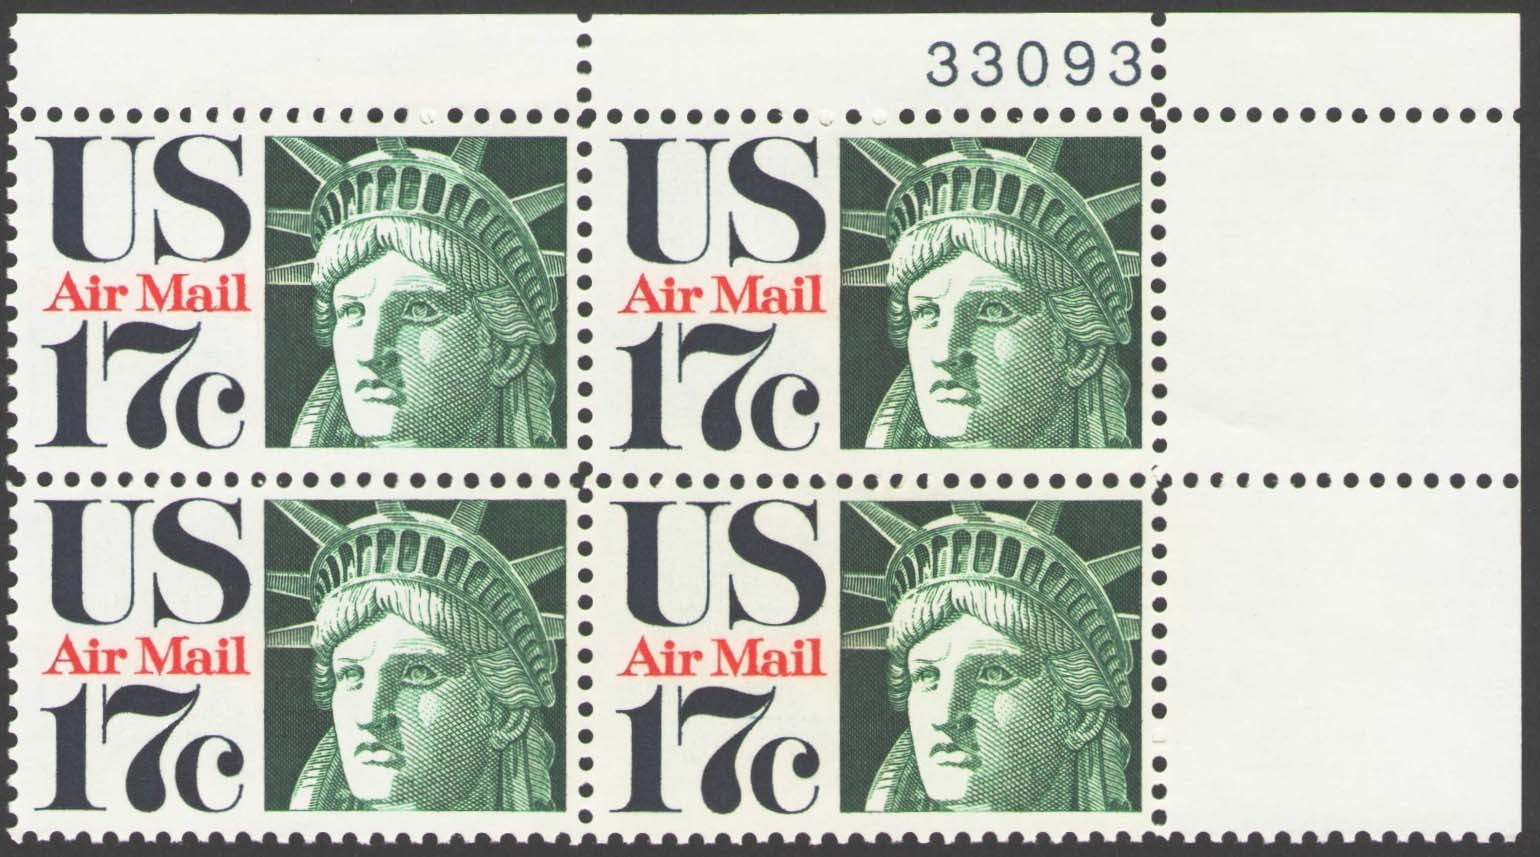 "Scott C-080 Plate Block (17 cents) <p> <a href=""/images/USA-Scott-C-080-PB.jpg""><font color=green><b>View the image</a></b></font>"